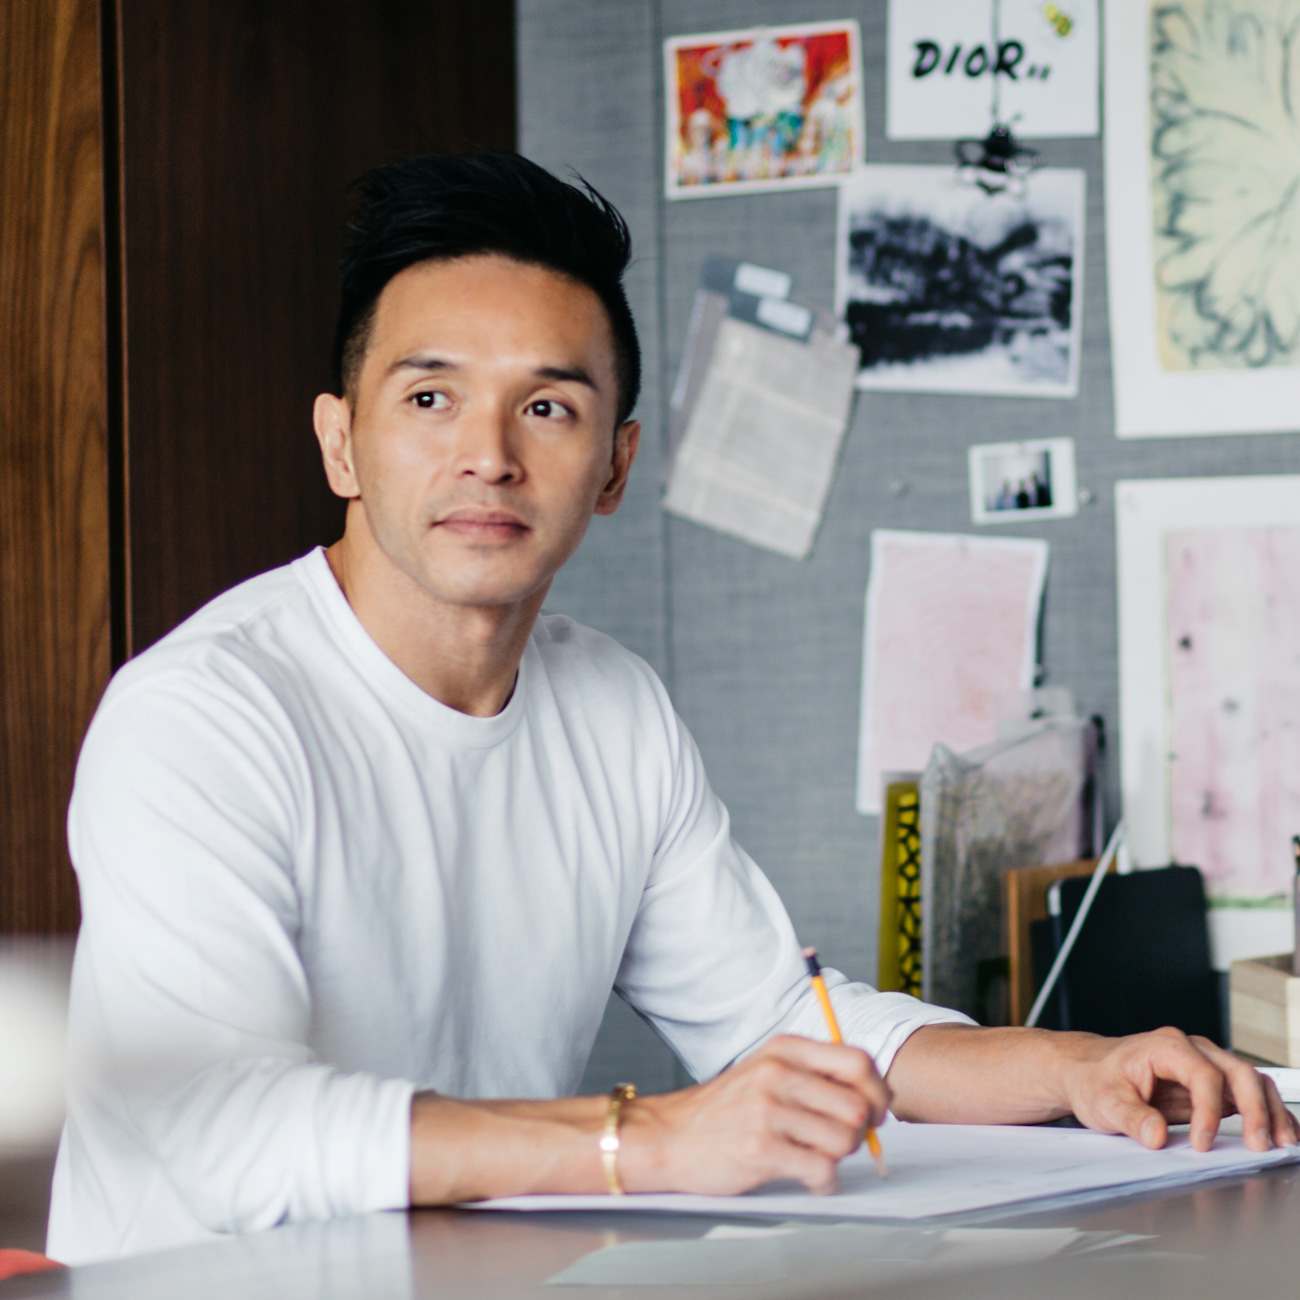 Designer Stanley KC in his Hong Kong office